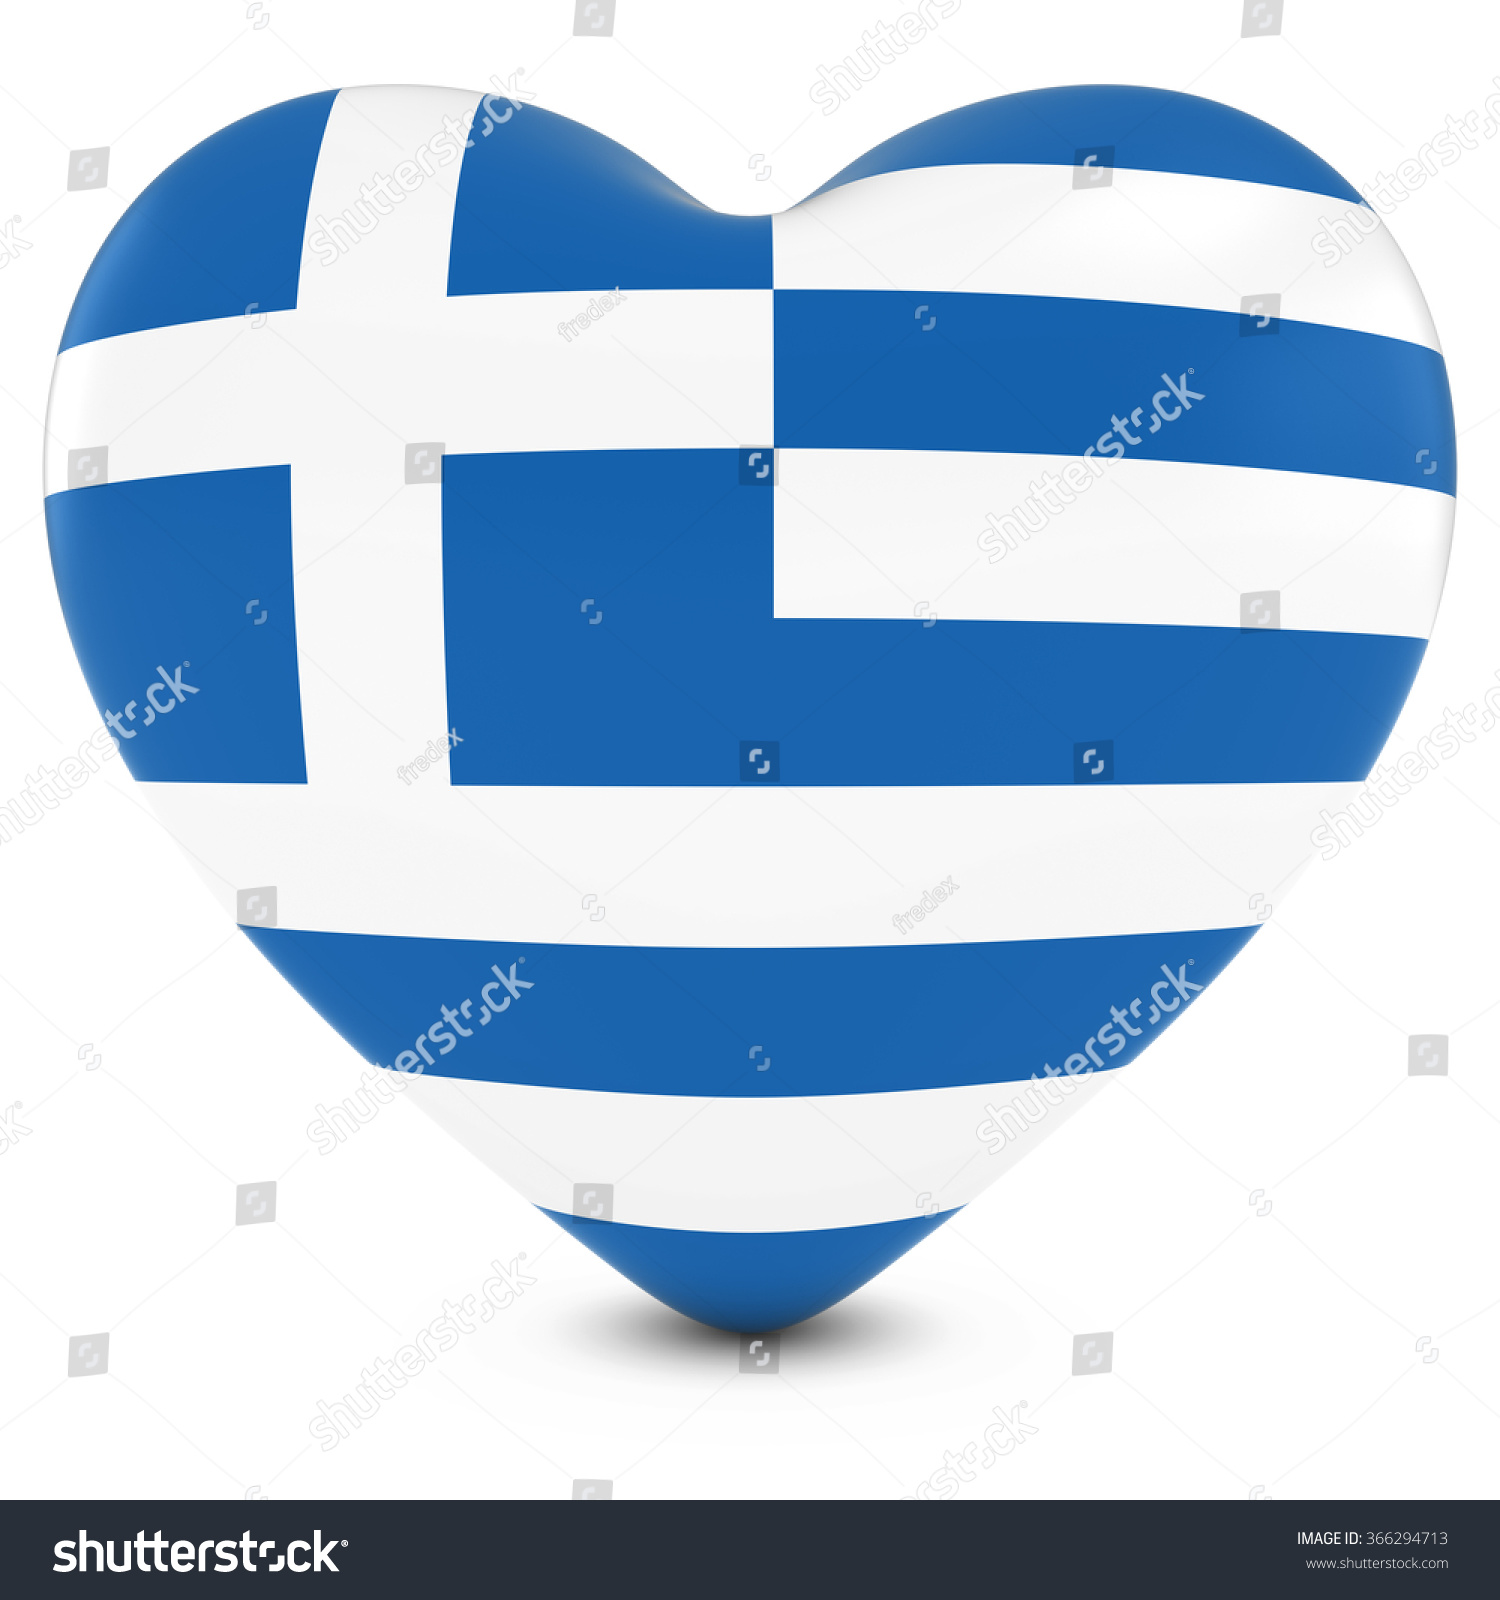 Royalty Free Stock Illustration Of Love Greece Concept Image Heart